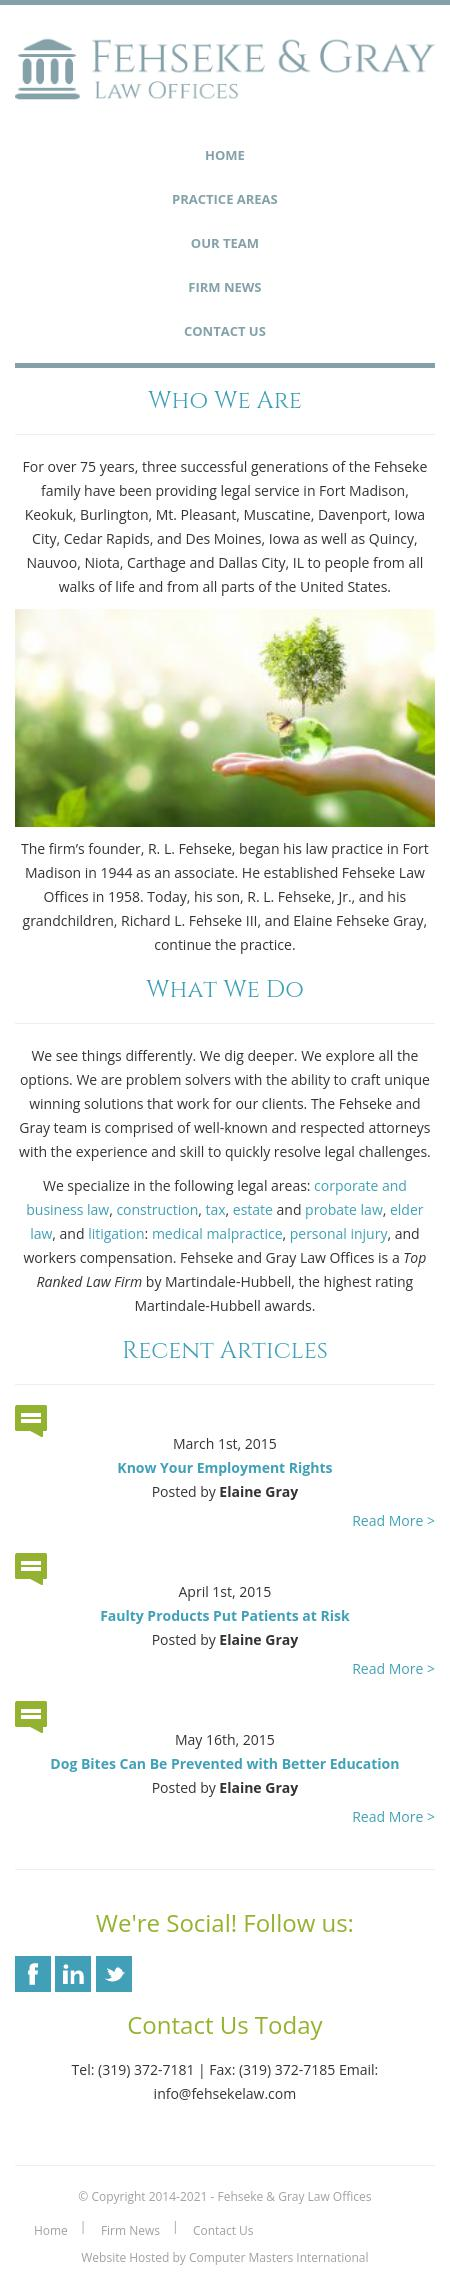 Fehseke and Gray - Fort Madison IA Lawyers